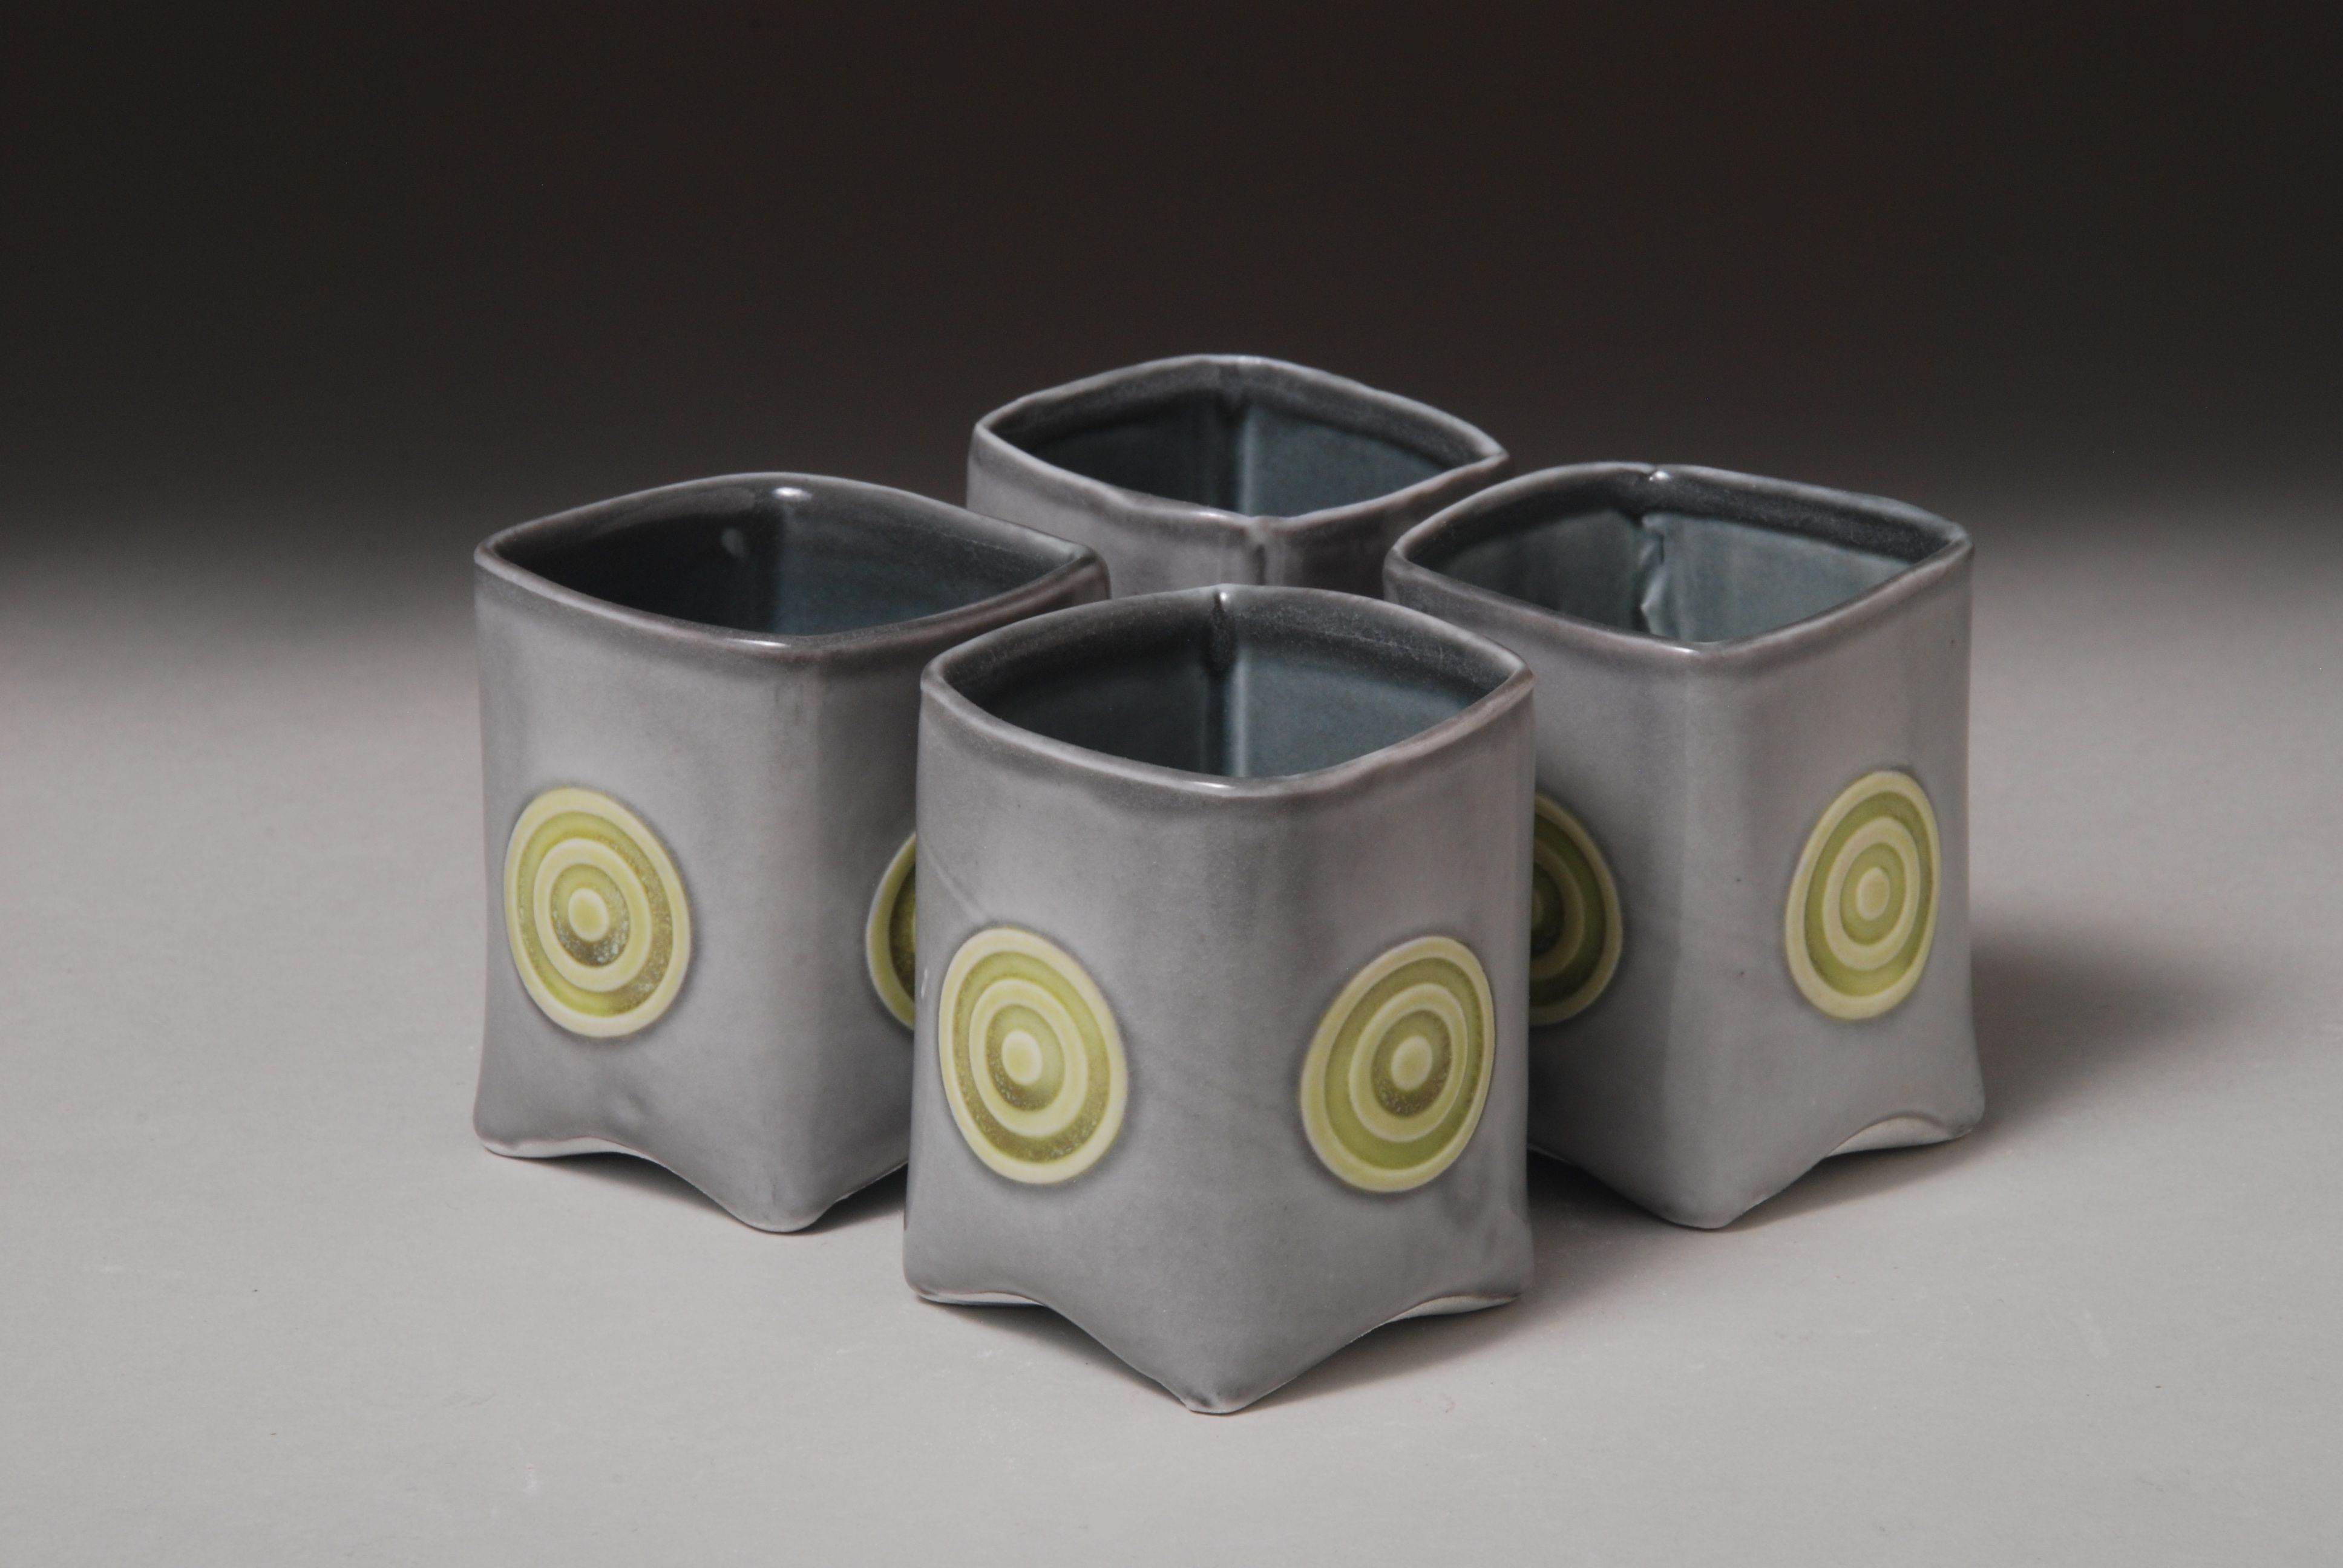 Adult Ceramic Classes | Clay Workshops for Adults in Idyllwild California  Deciphering Glazes Peter Pinnell and Richard Burkett Six-day session